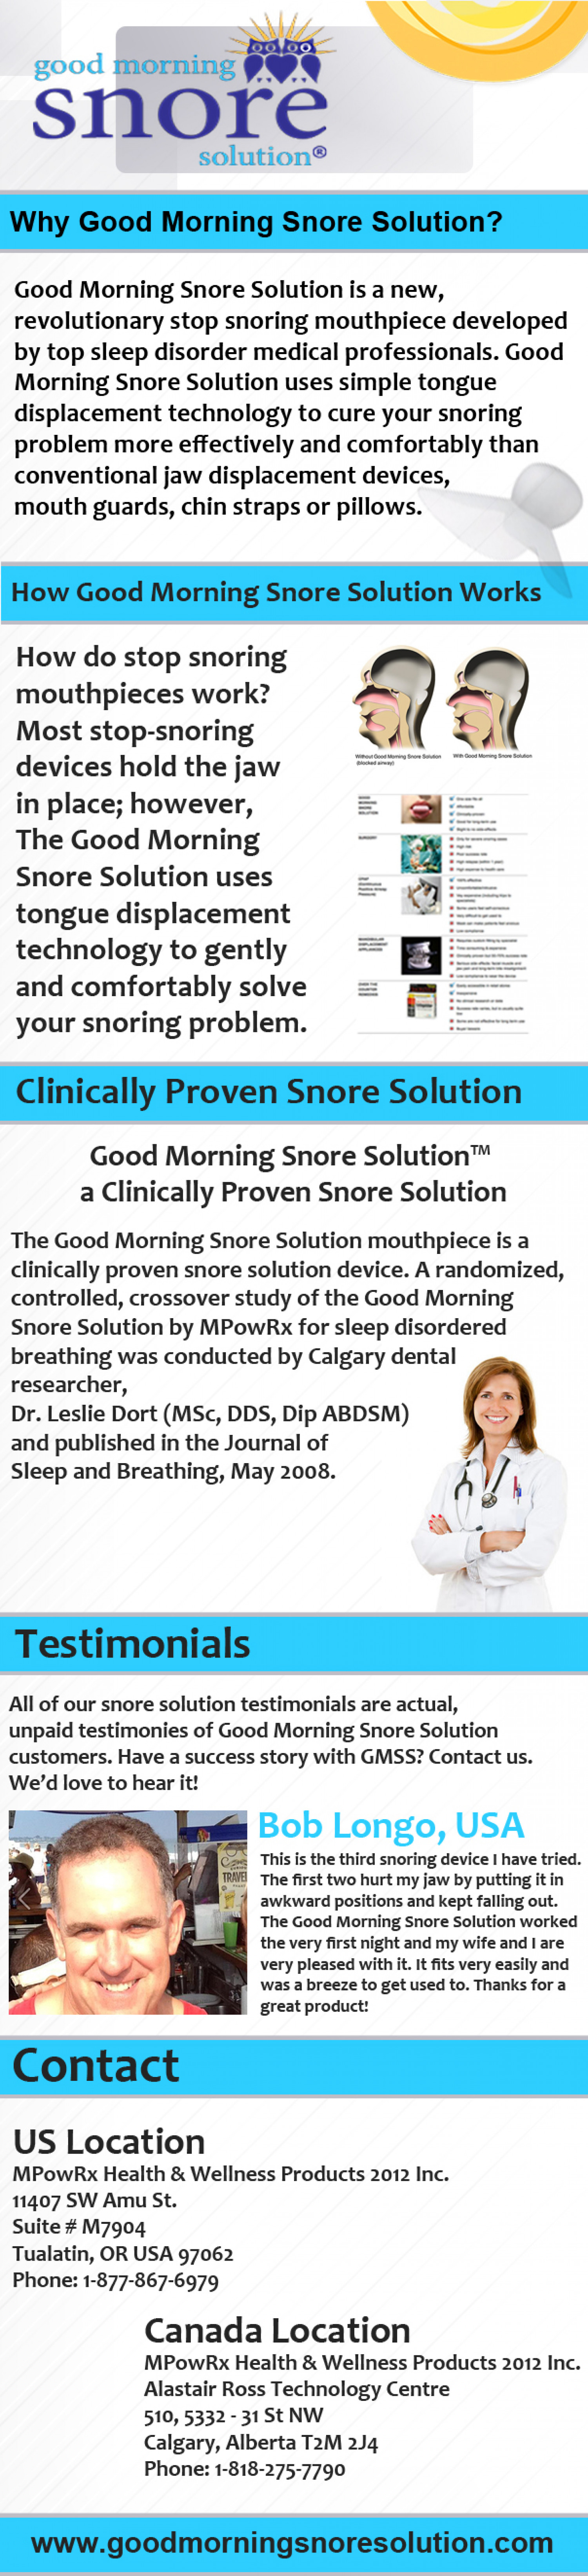 Good Morning Snore Solution Infographic